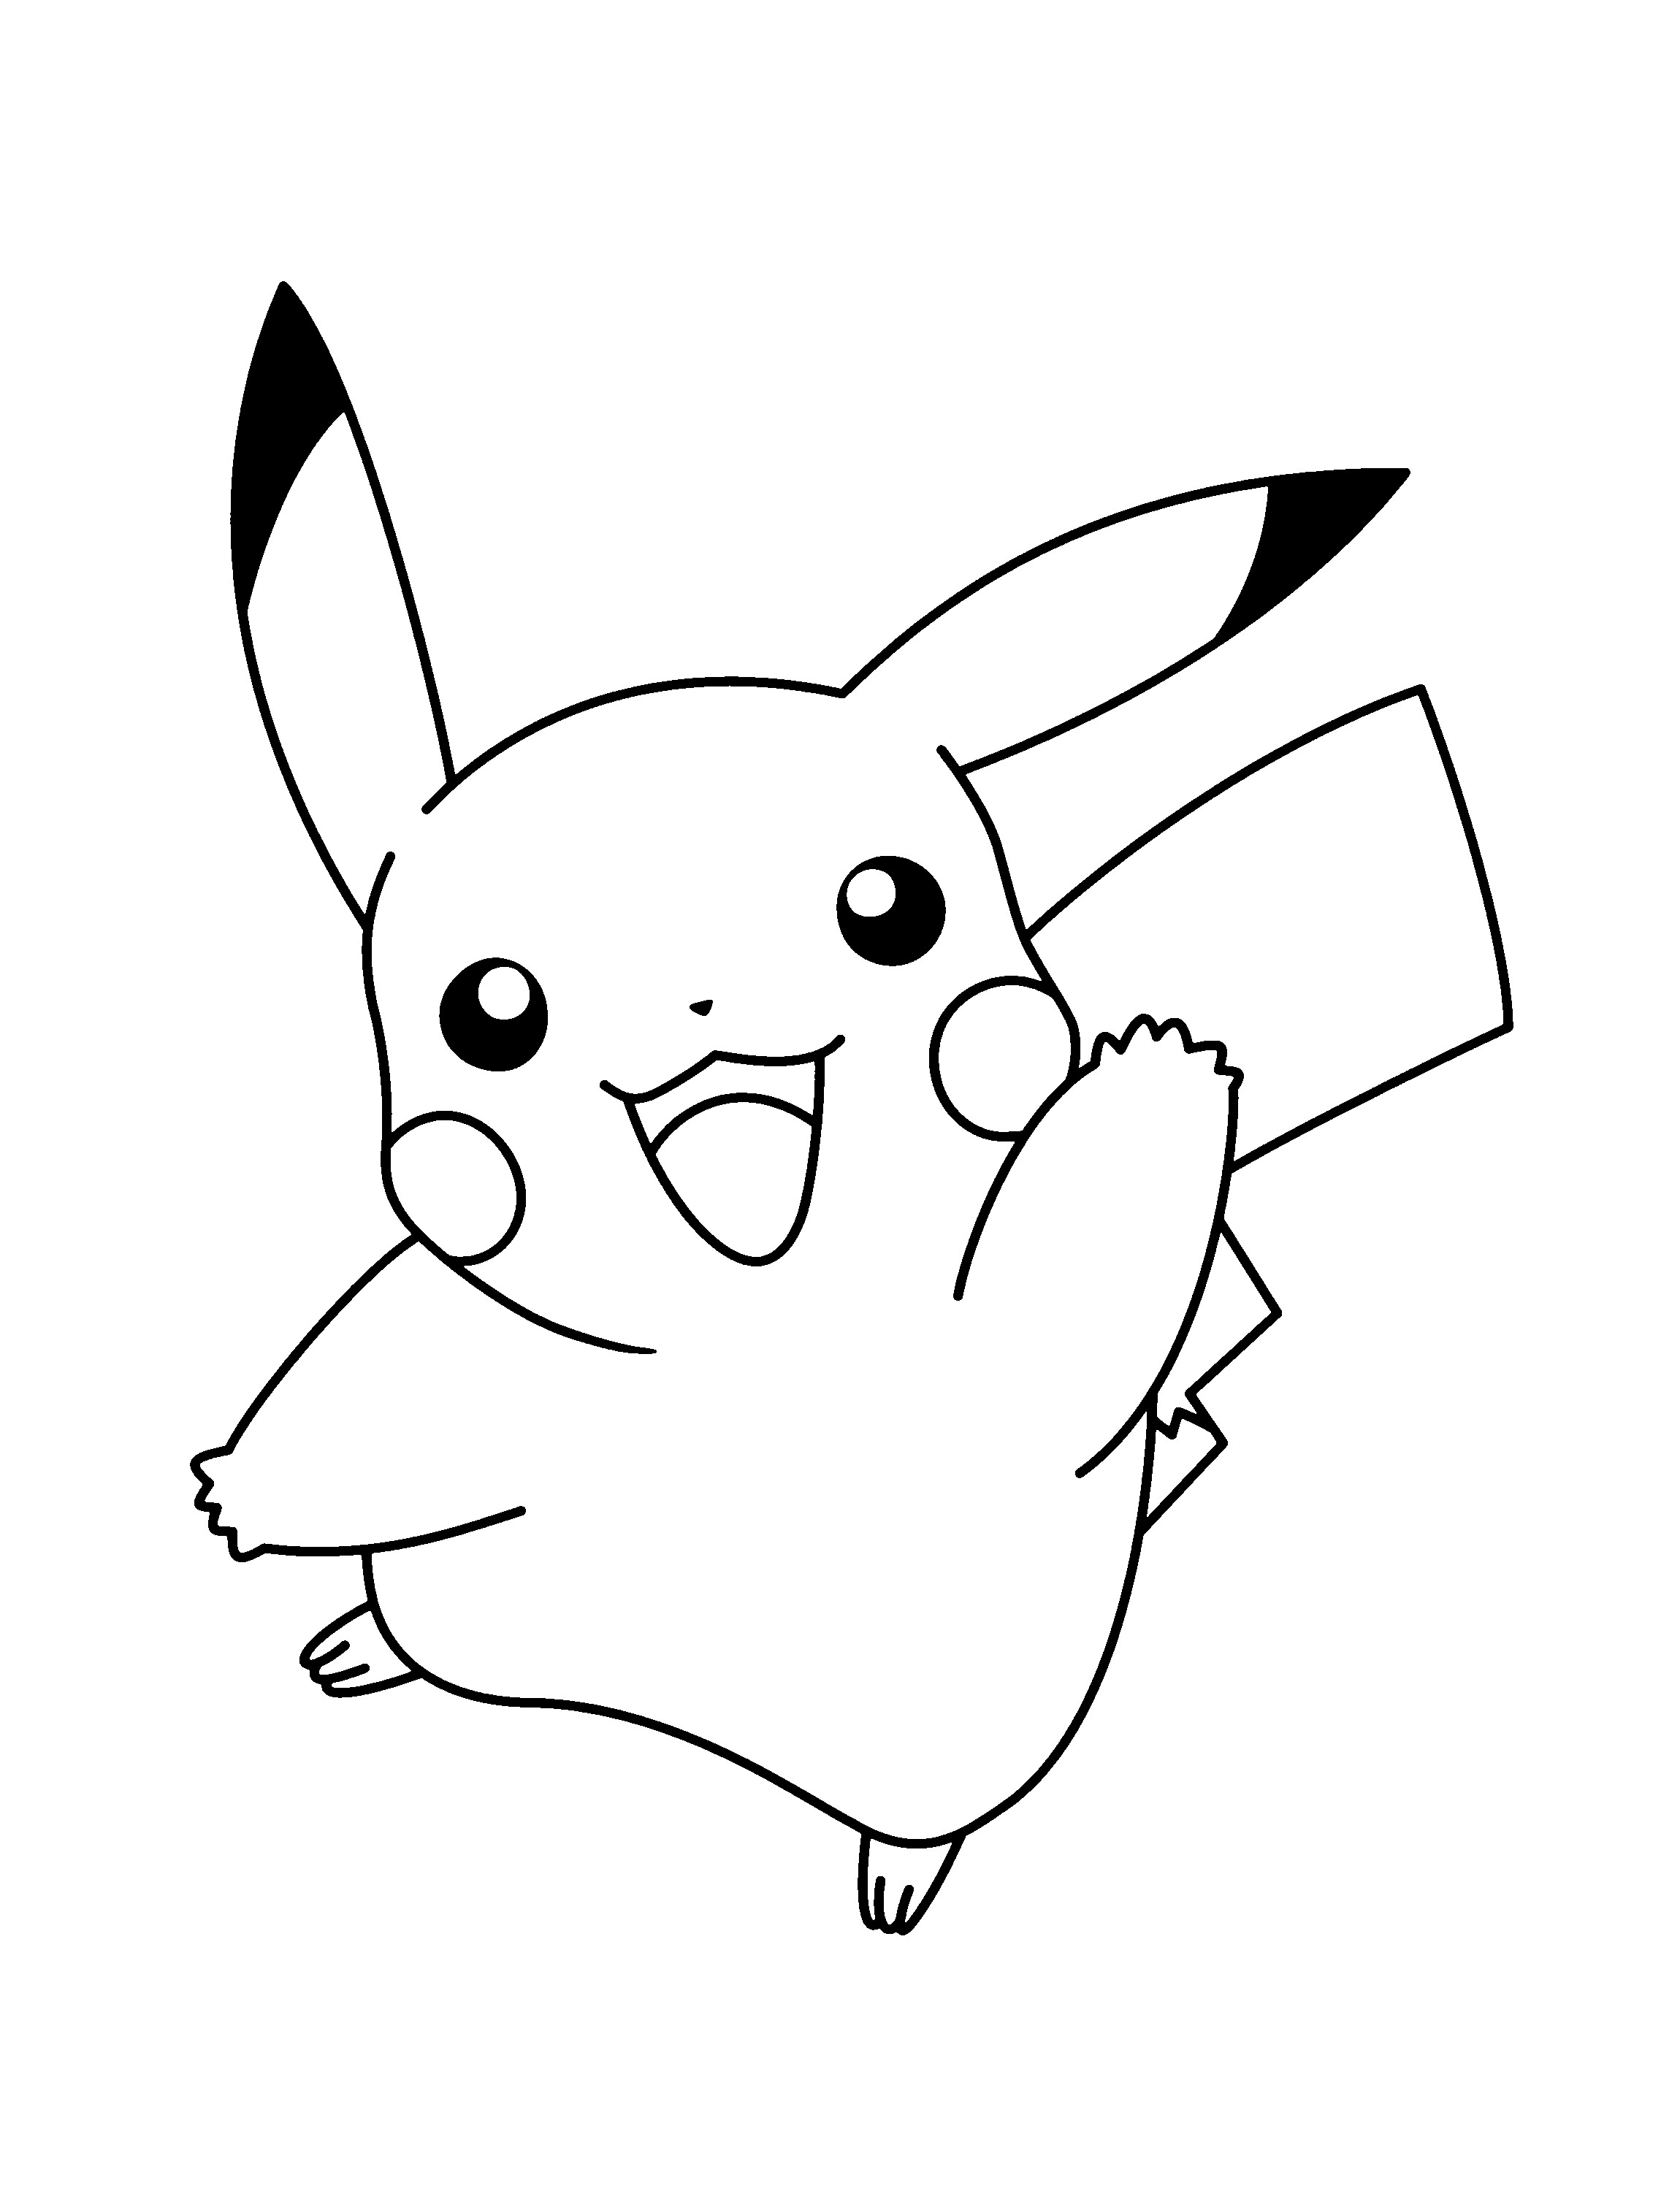 Pokemon coloring pages popplio - Pokemon Coloring Pages Popplio